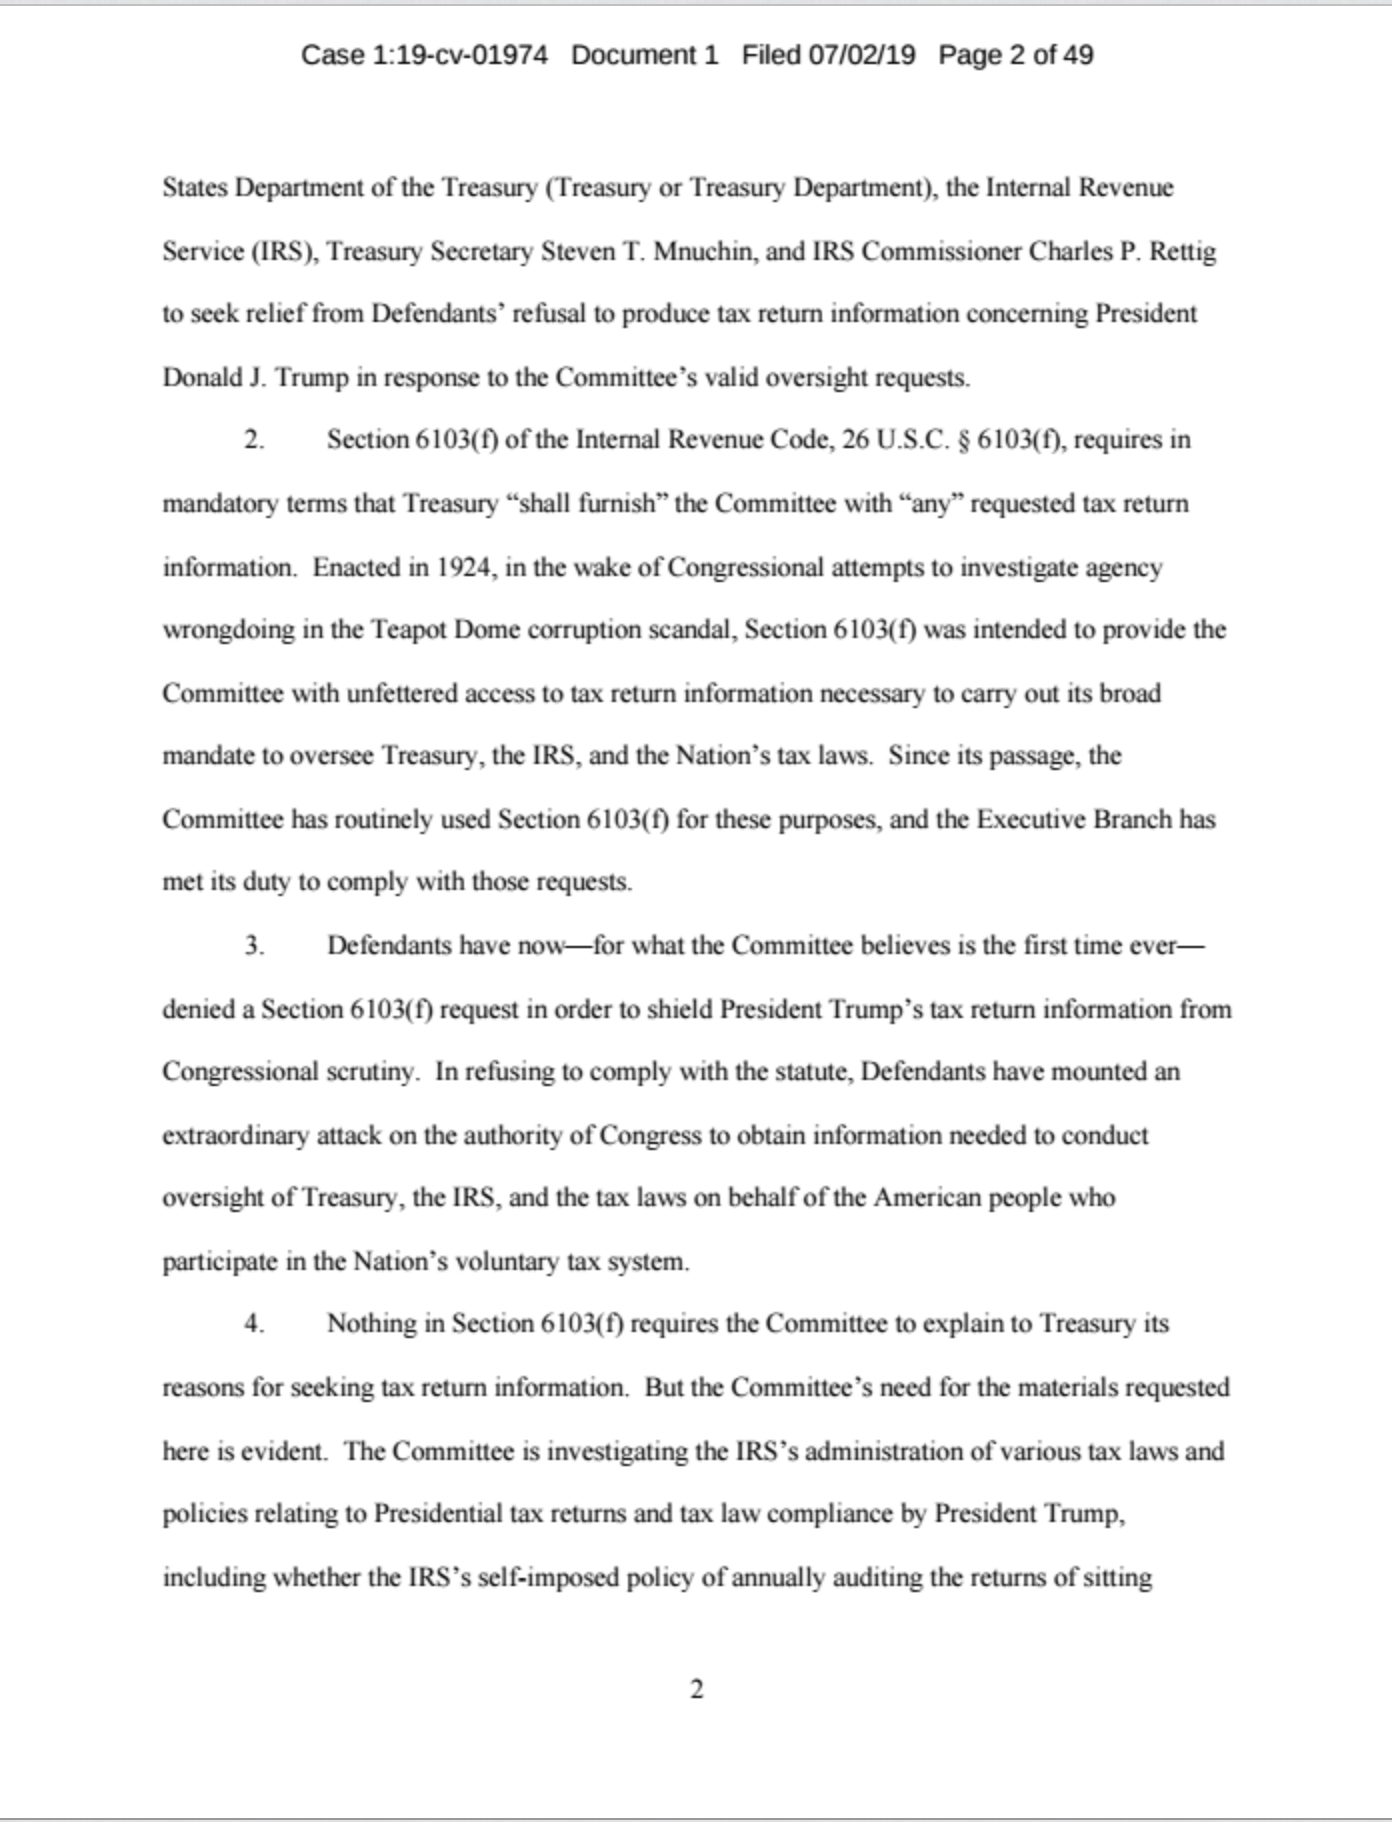 Screen-Shot-2019-07-02-at-11.29.20-AM JUST IN: House Ways And Means Committee Drops Bombshell Corruption Crime Donald Trump Politics Top Stories